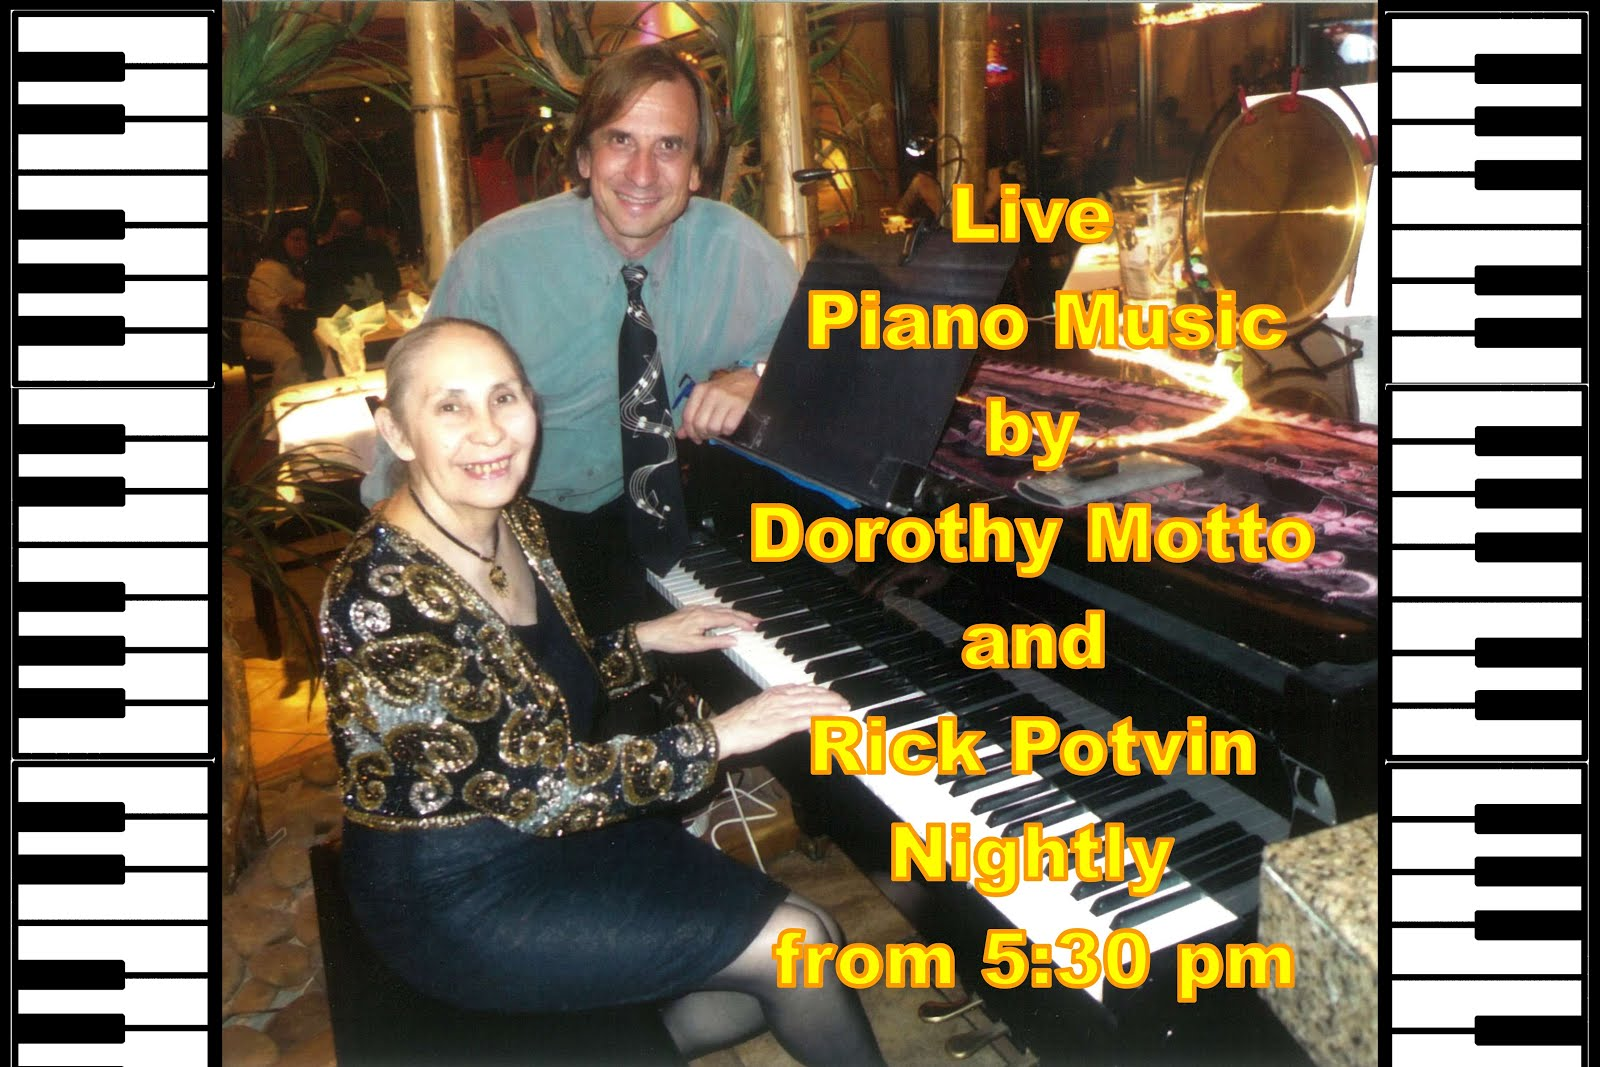 Restaurant Piano Music & Lessons by Rick Potvin and Dorothy Motto